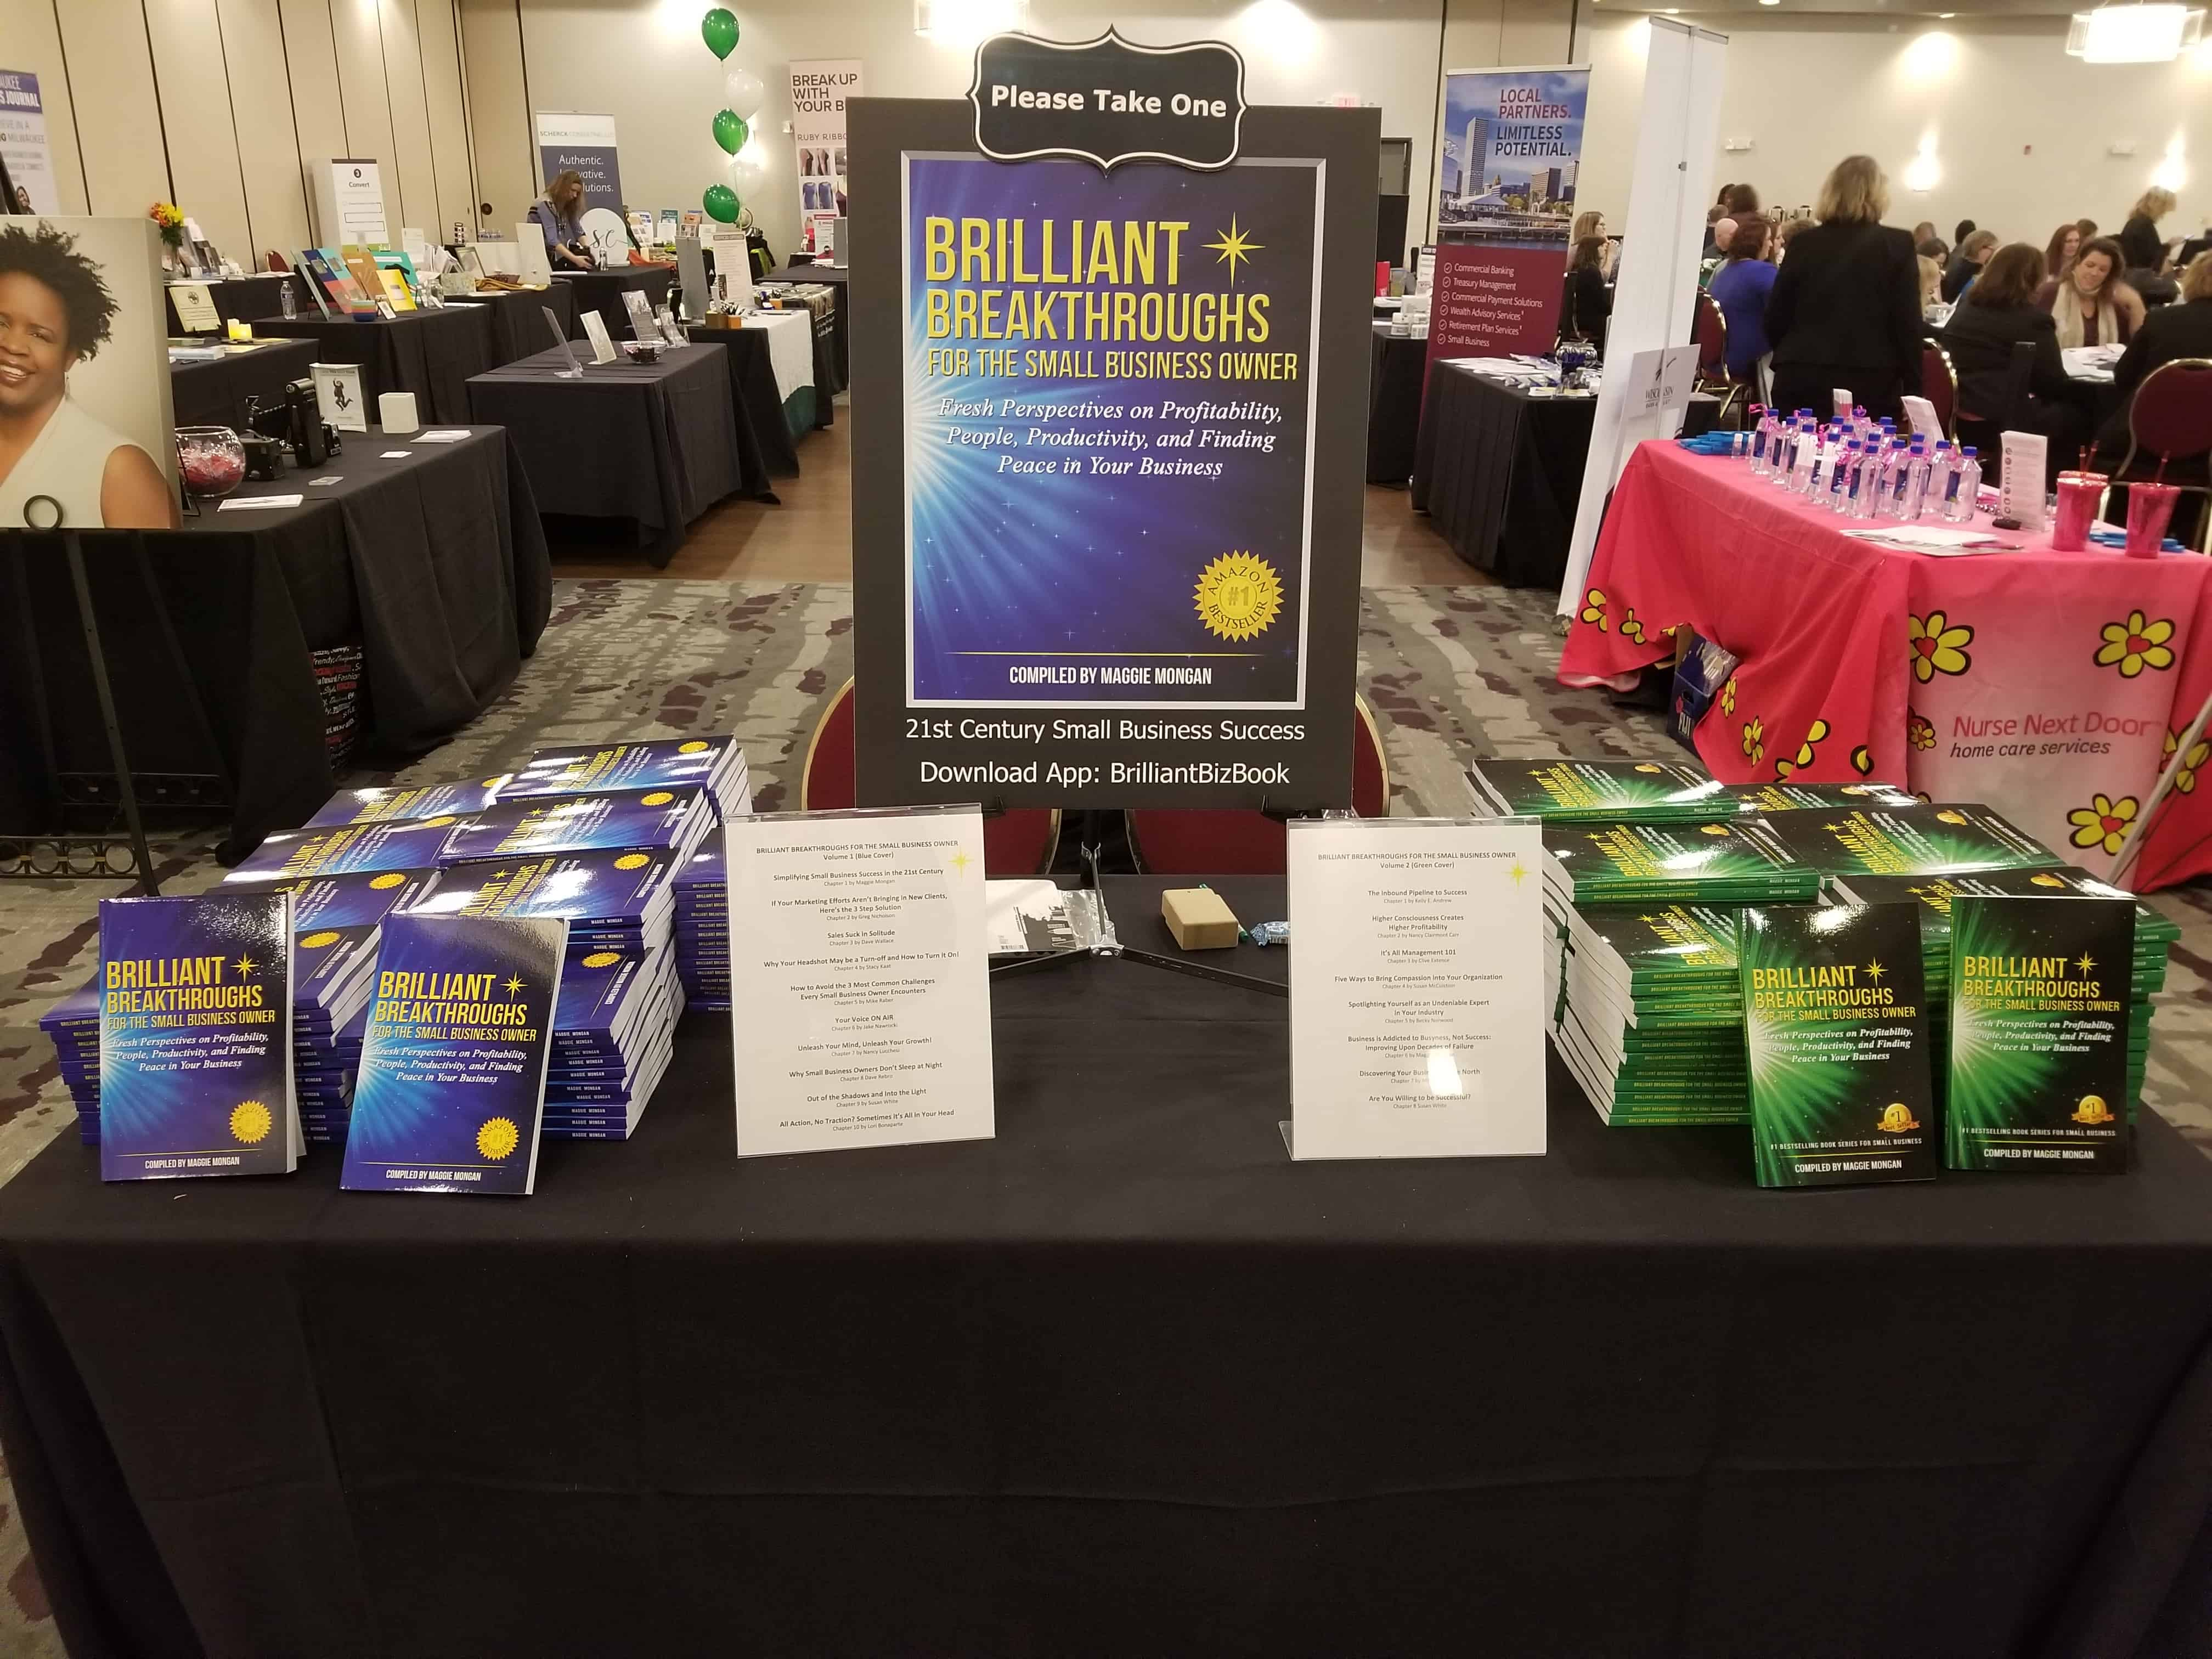 Table of Brilliant Breakthroughs for the Small Business Owner -Vols 1 and 2 at eWN Summit